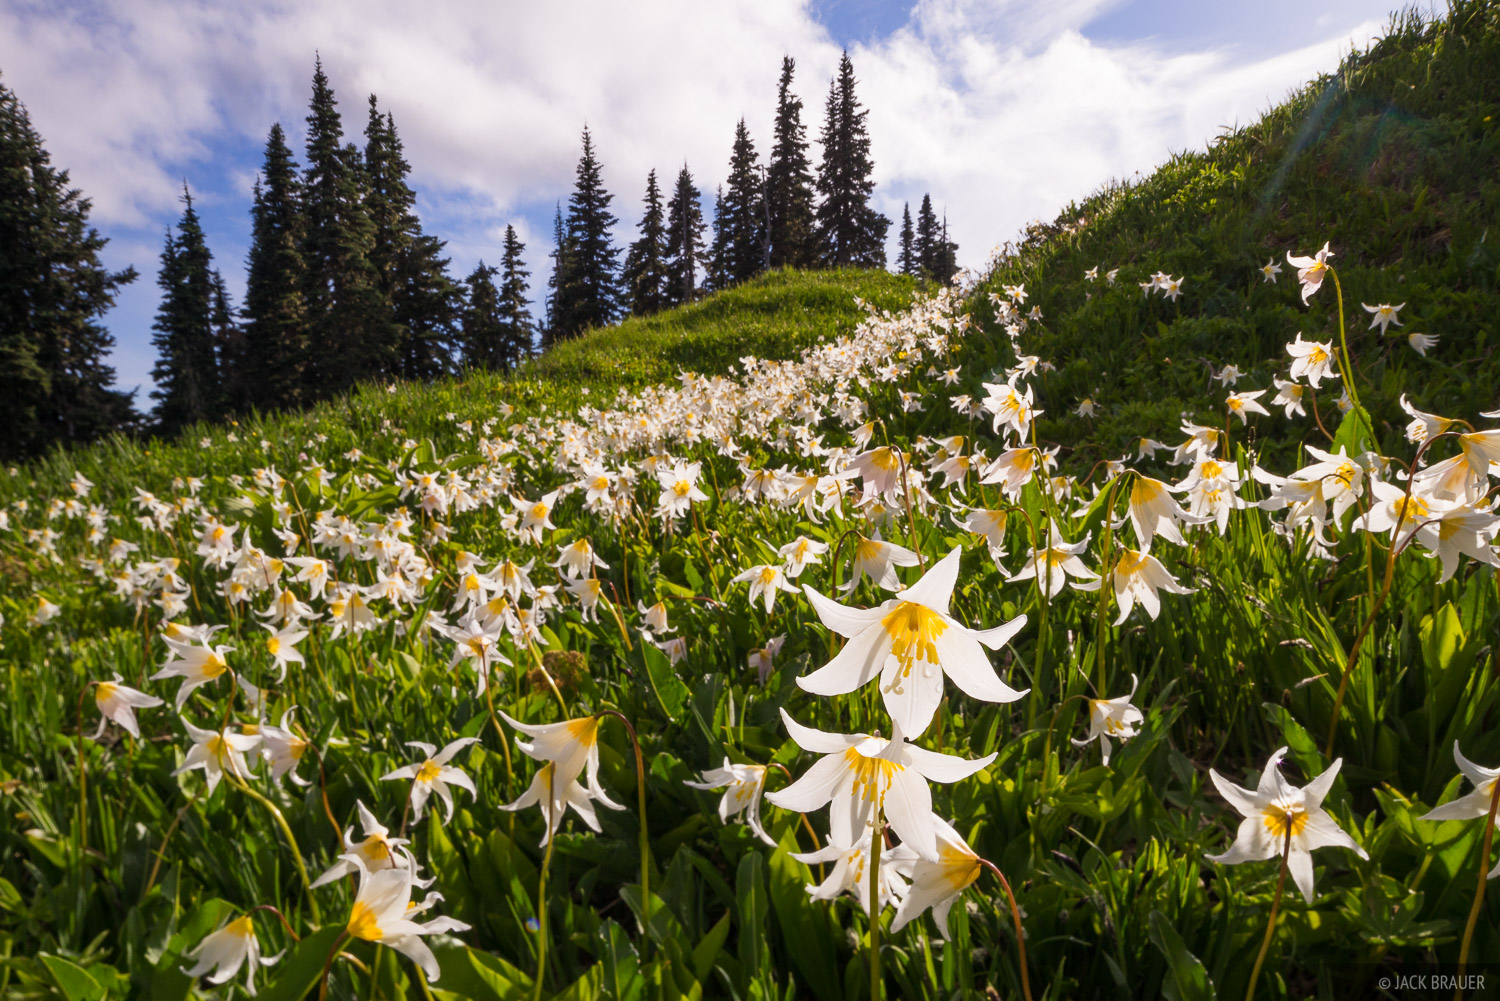 Olympic Peninsula, Sol Duc, Washington, wildflowers, Olympic National Park, avalanche lilies, photo